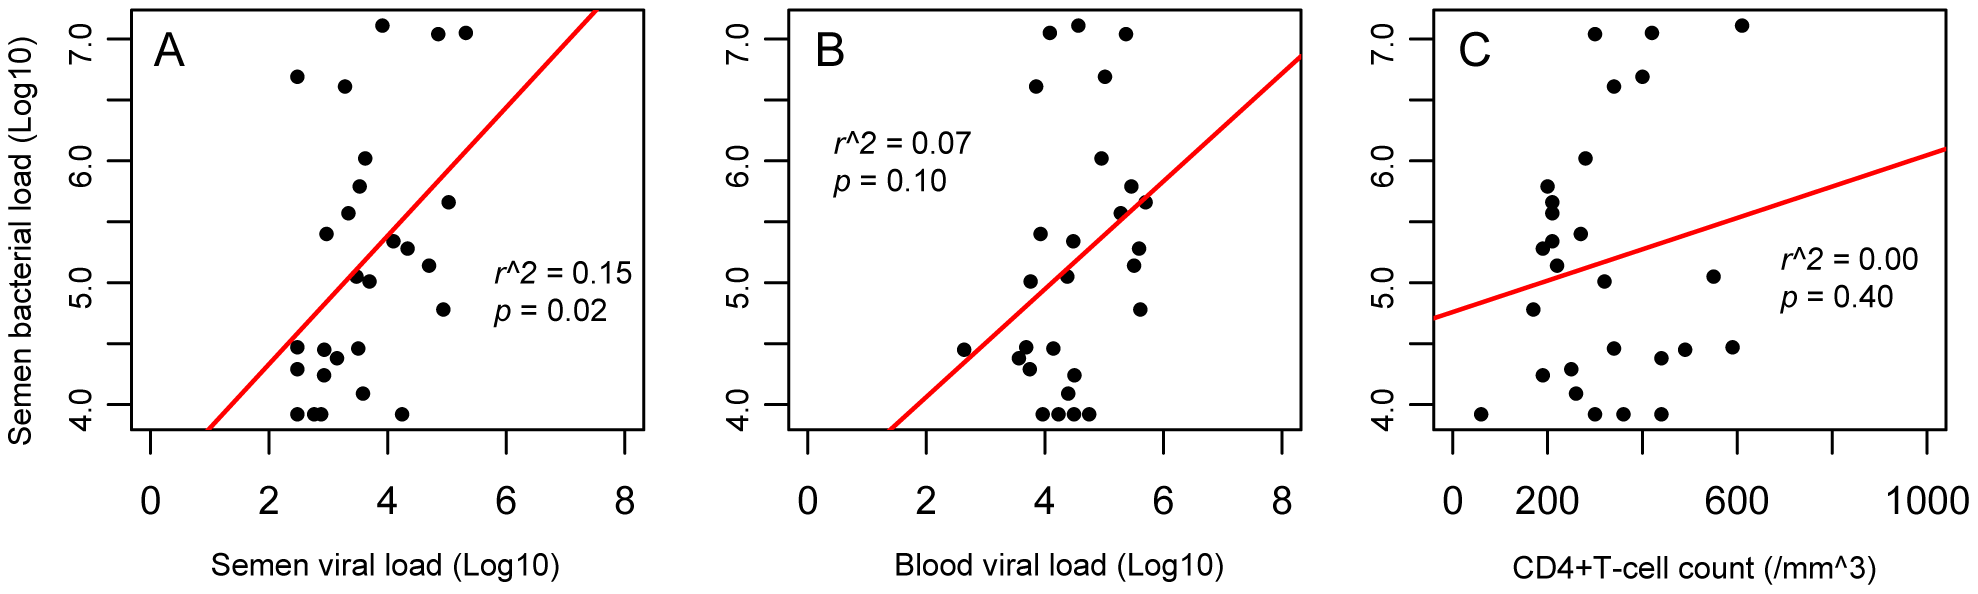 Correlation of semen bacterial load with CD4+ T-cell counts and viral loads in the semen and blood of HIV-infected men prior to antiretroviral treatment.